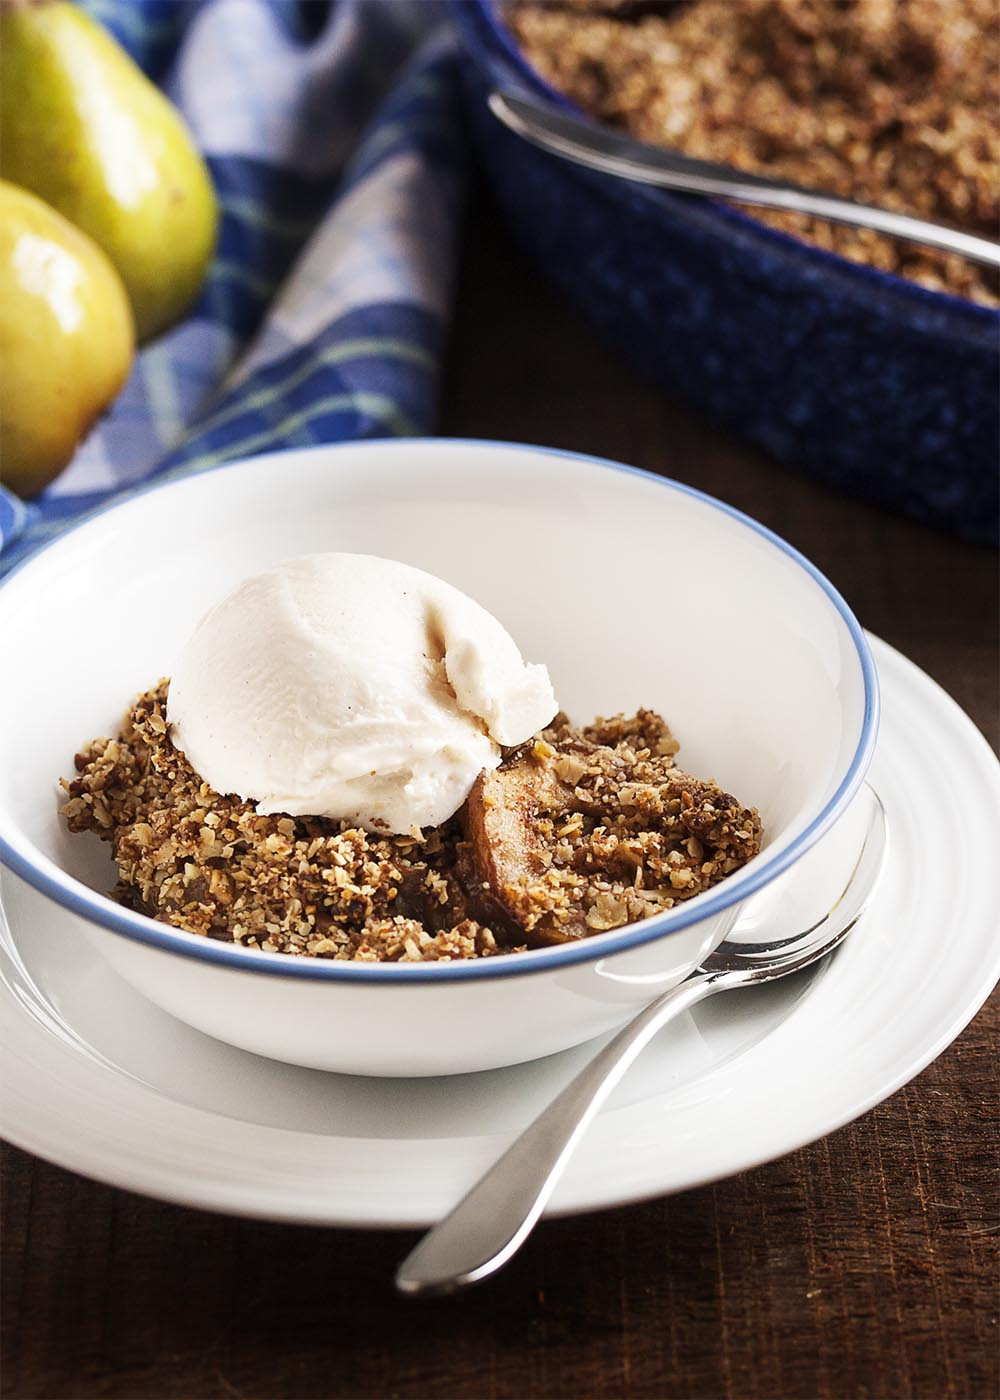 Gluten-Free Pear Ginger Crumble - Ripe pears and freshly grated ginger are topped with a nut and oat streusel in this lightly sweetened, gluten-free crumble. With no peeling necessary since the pears are sliced so thin! | justalittlebitofbacon.com